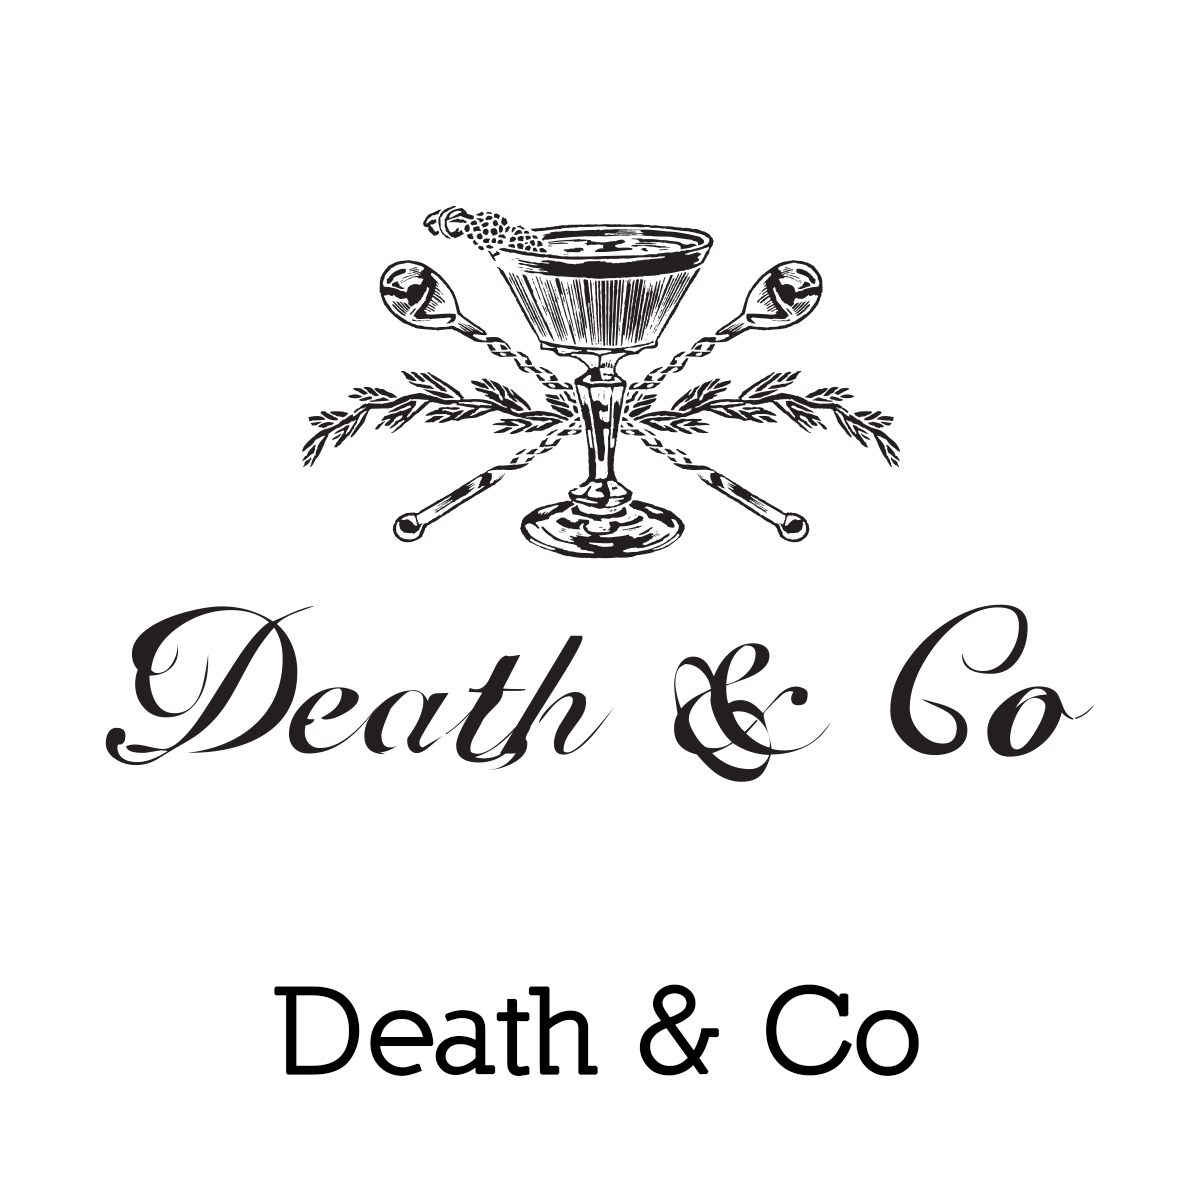 death-&-co_resized-for-web.jpg